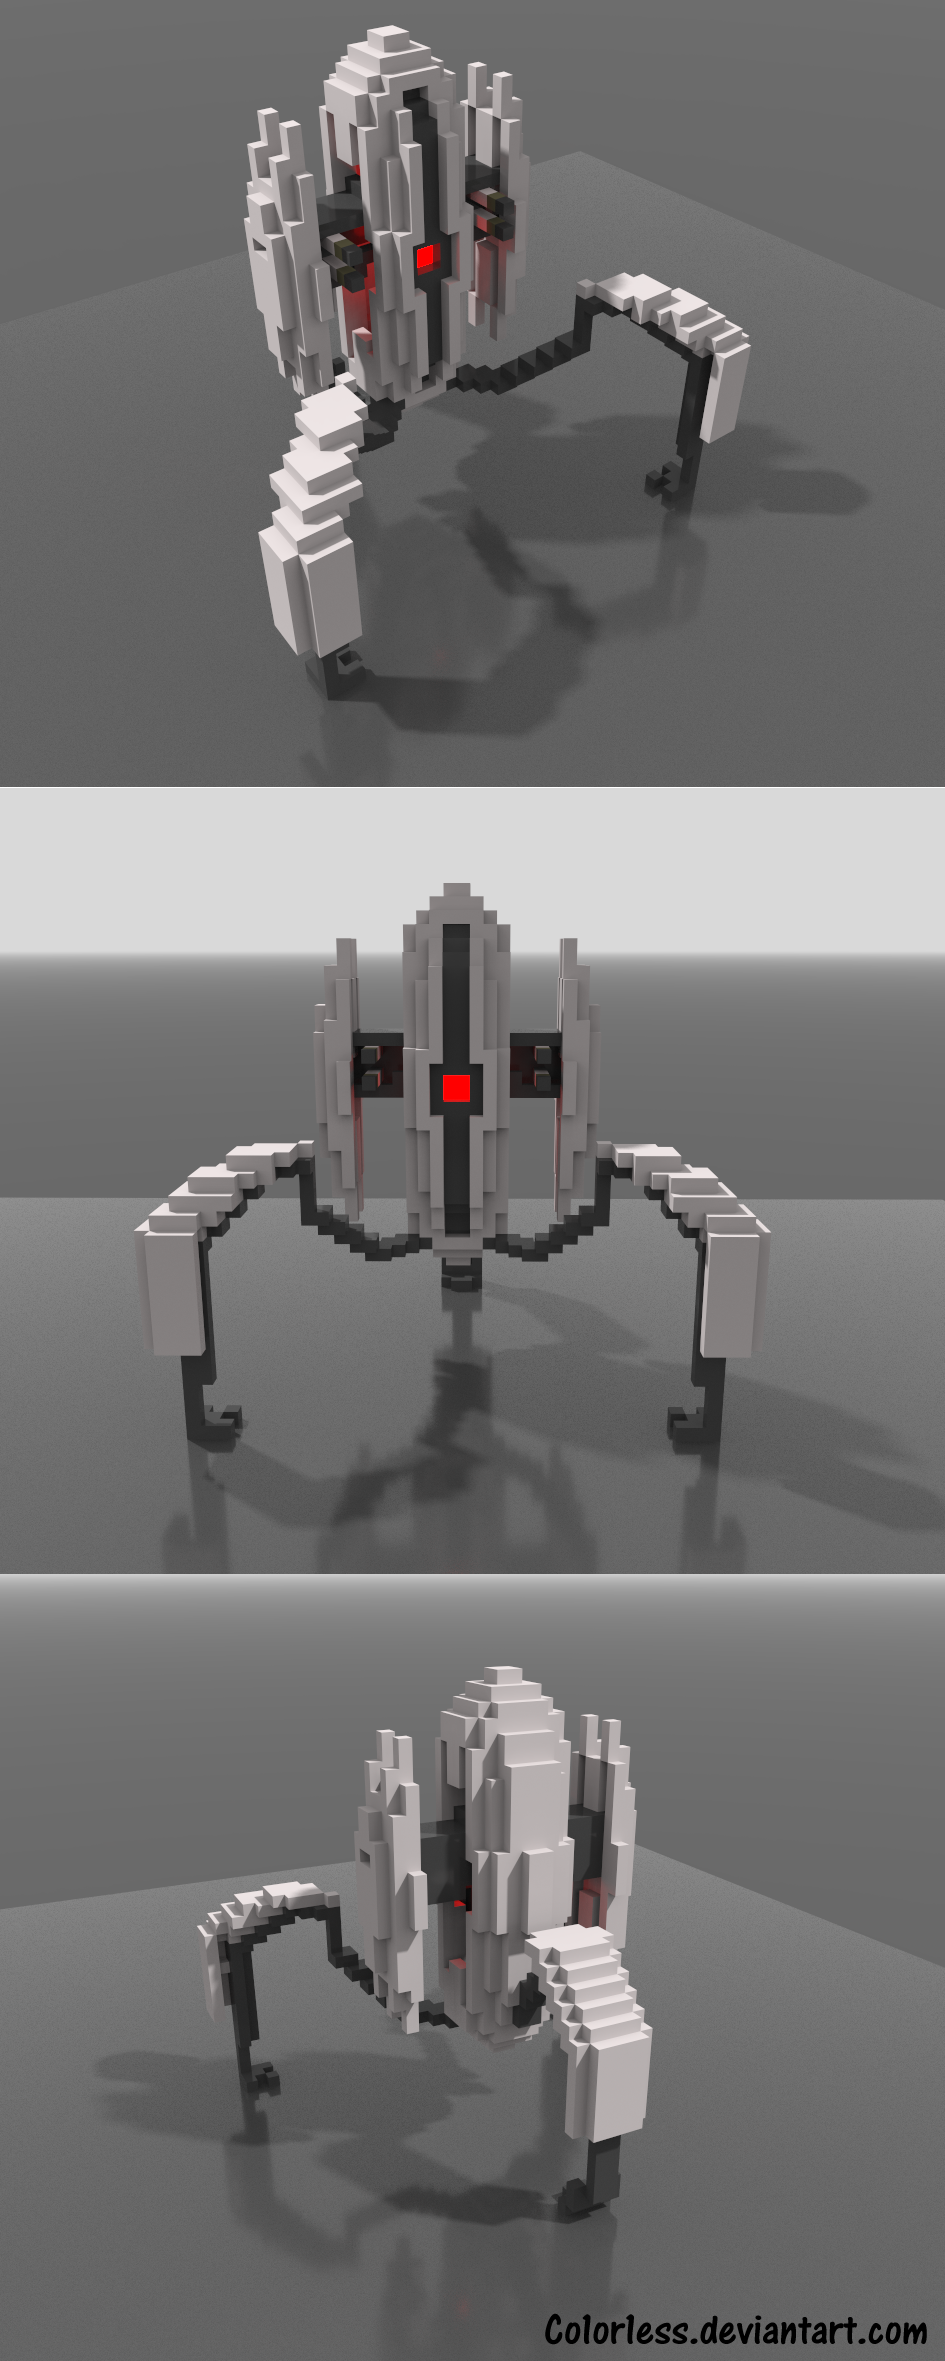 MagicaVoxel Practice - Portal Turret by Co1or1ess on DeviantArt